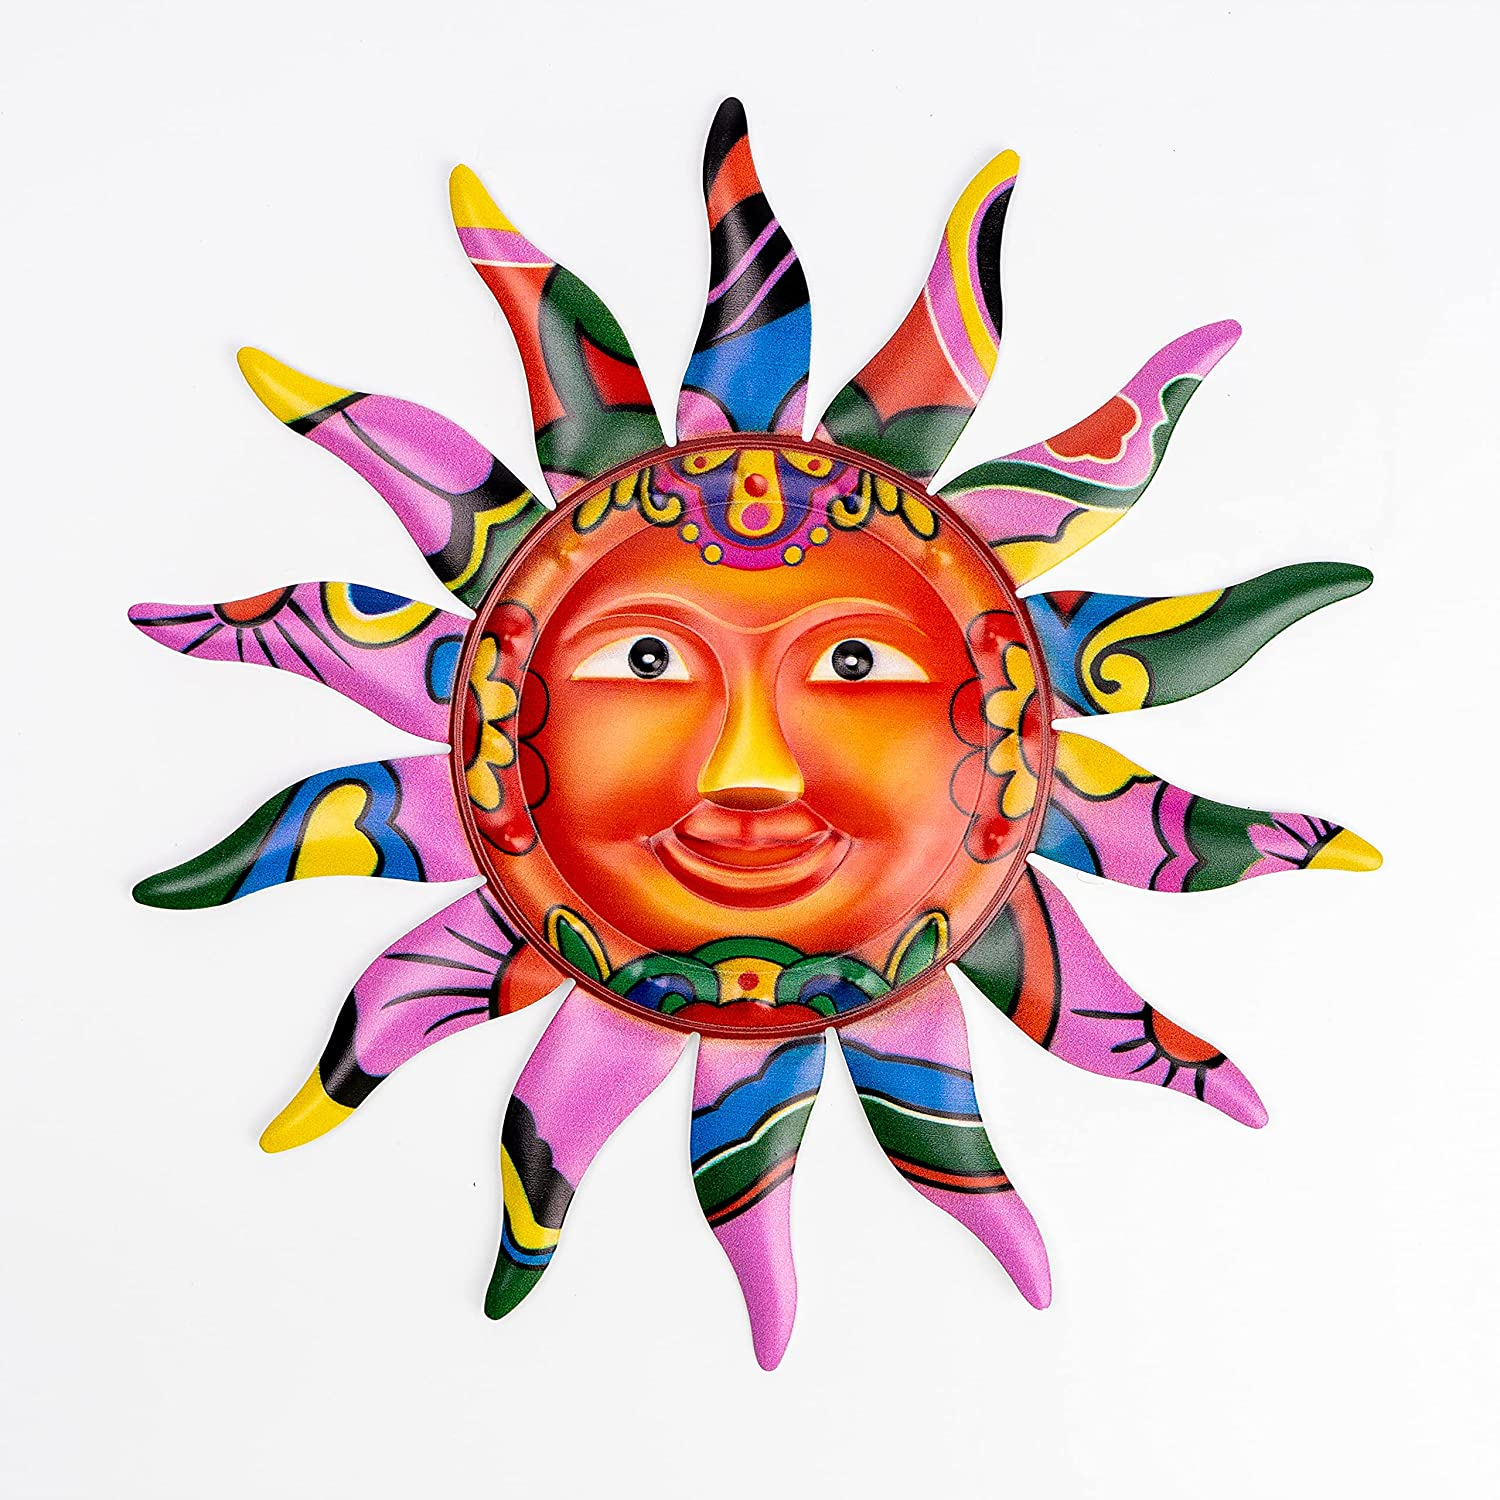 VEWOGARDEN Metal Sun Wall Art Decor Hanging for Indoor Outdoor Home Garden Colorful Sun Face Sculptures & Statues 12.7 Inches Pink